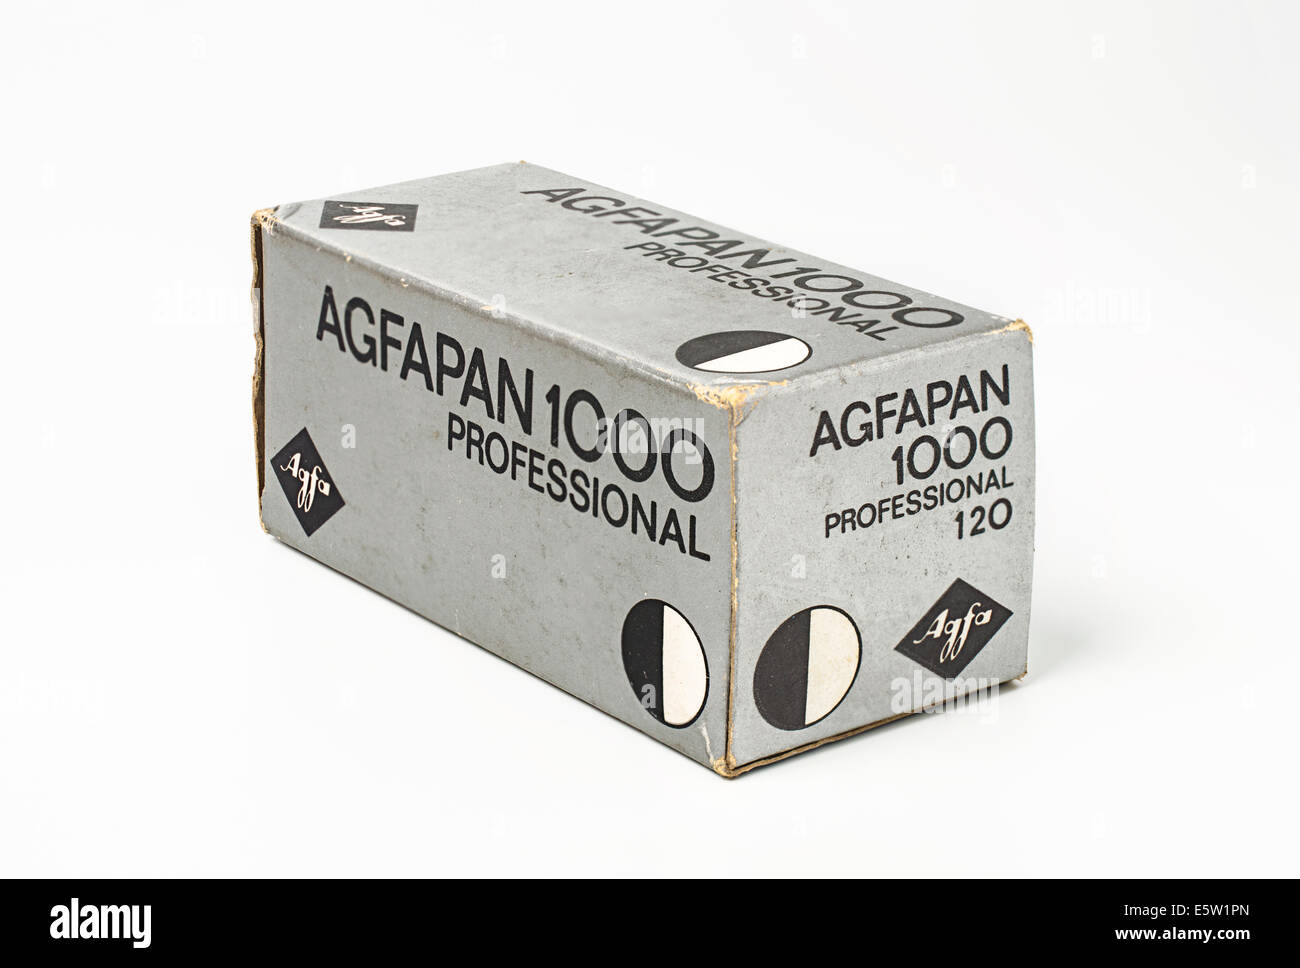 A boxed roll of 120 Agfapan 1000 - high speed 1000 ASA film dated 1970 - Stock Image